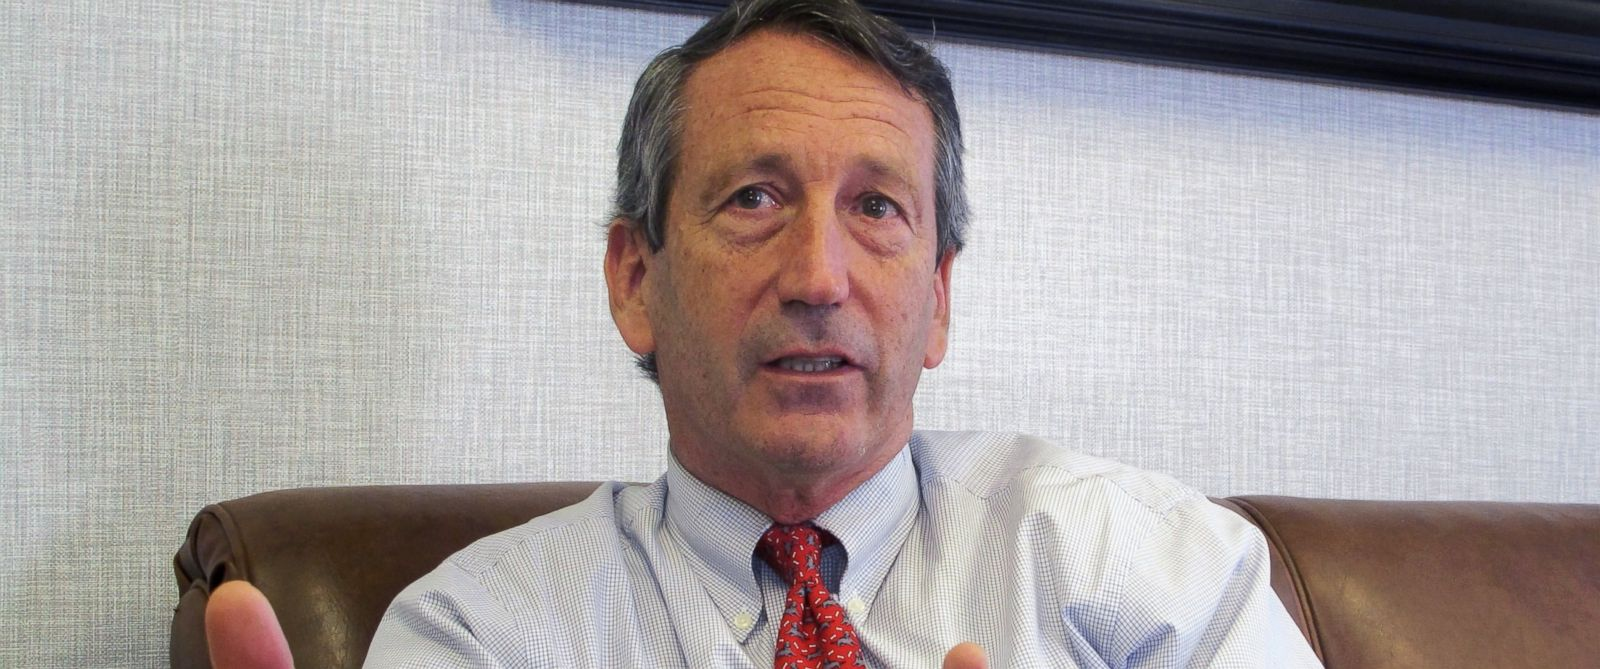 PHOTO: In a Dec. 18, 2013 photo, U.S. Rep. Mark Sanford, R-S.C., discusses his first months back in Congress during an Associated Press interview in his district office in Mount Pleasant, S.C.